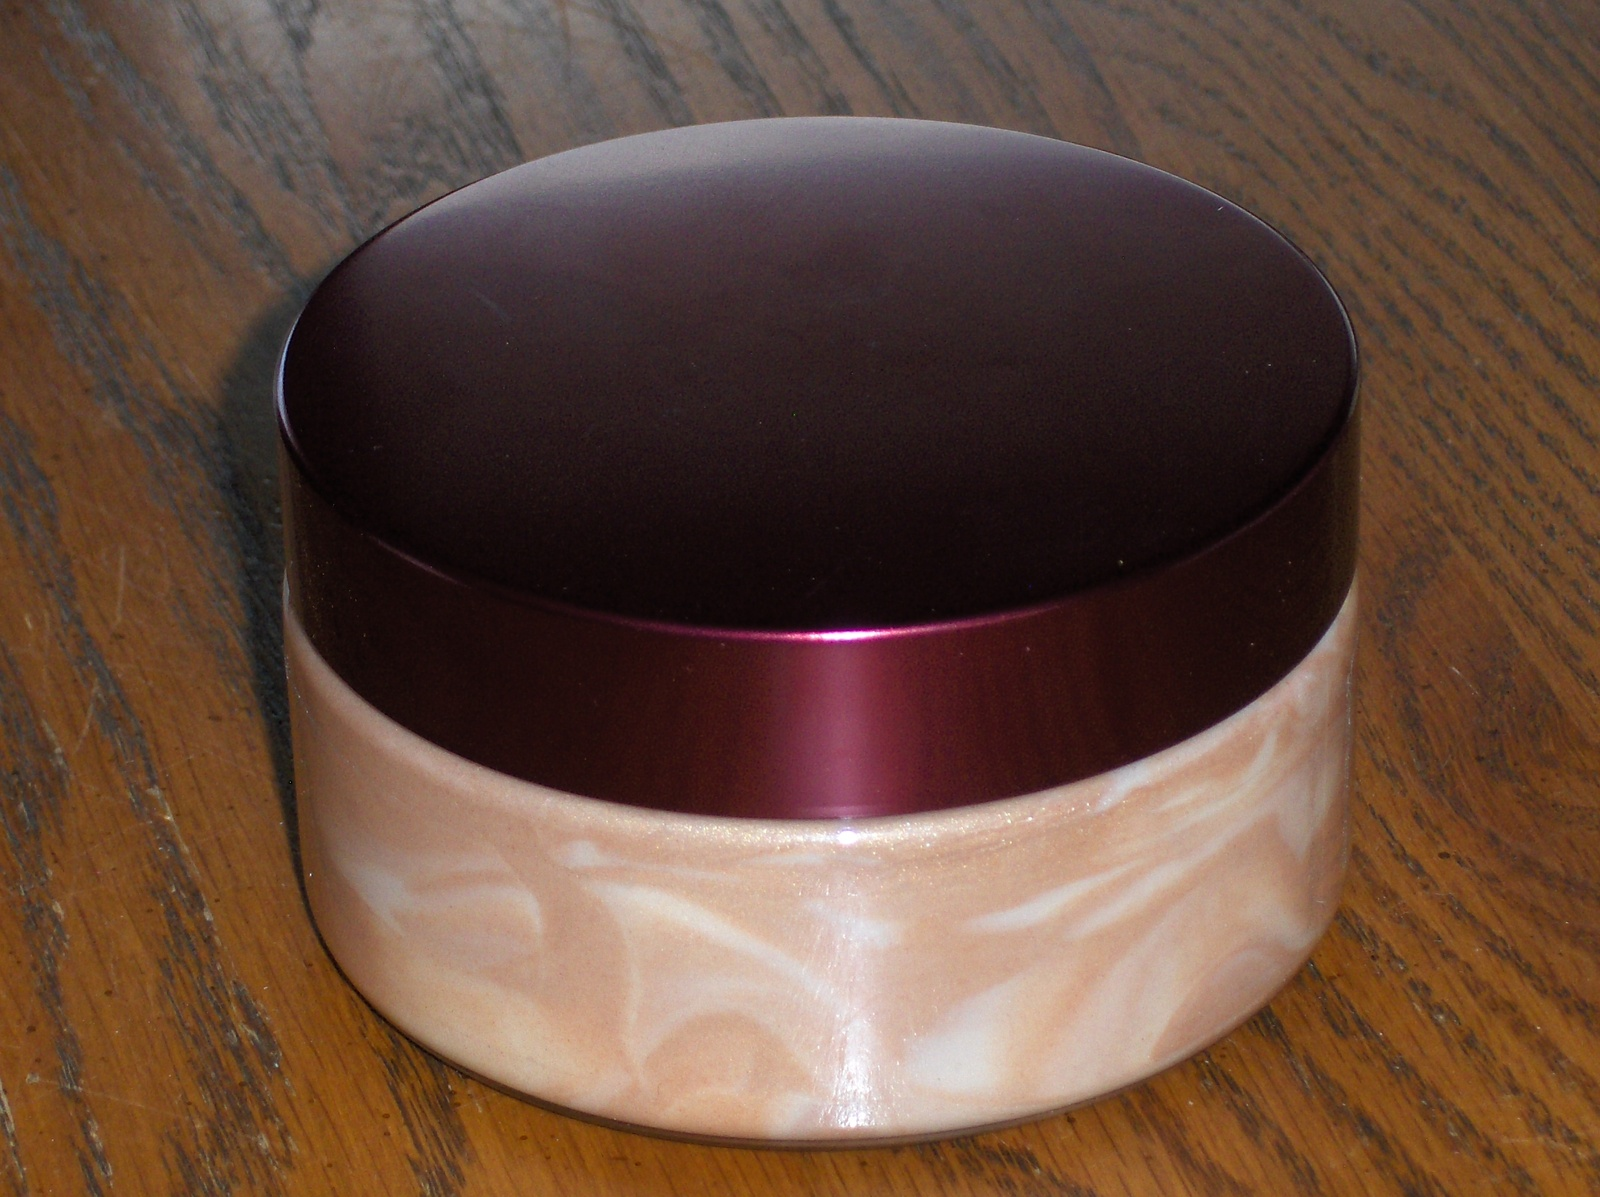 Amber Blush Golden Shimmer Body Souffle Bath & Body Works 8 oz.